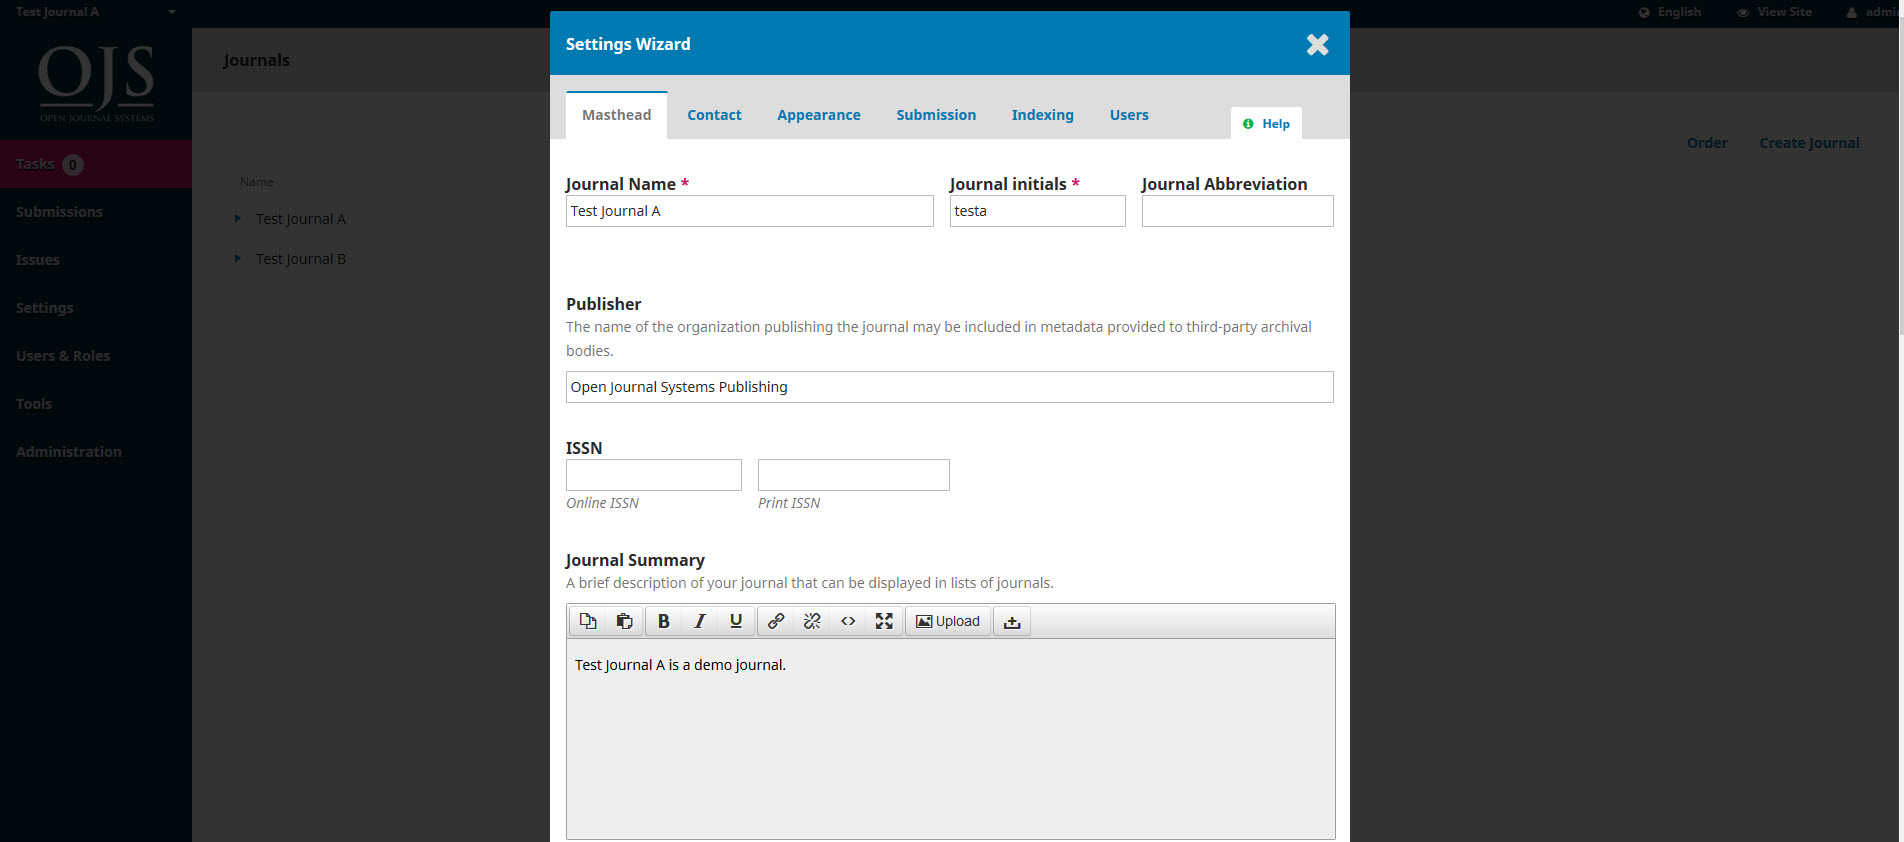 ojs3-site-management-hosted-journal-setting-wizard